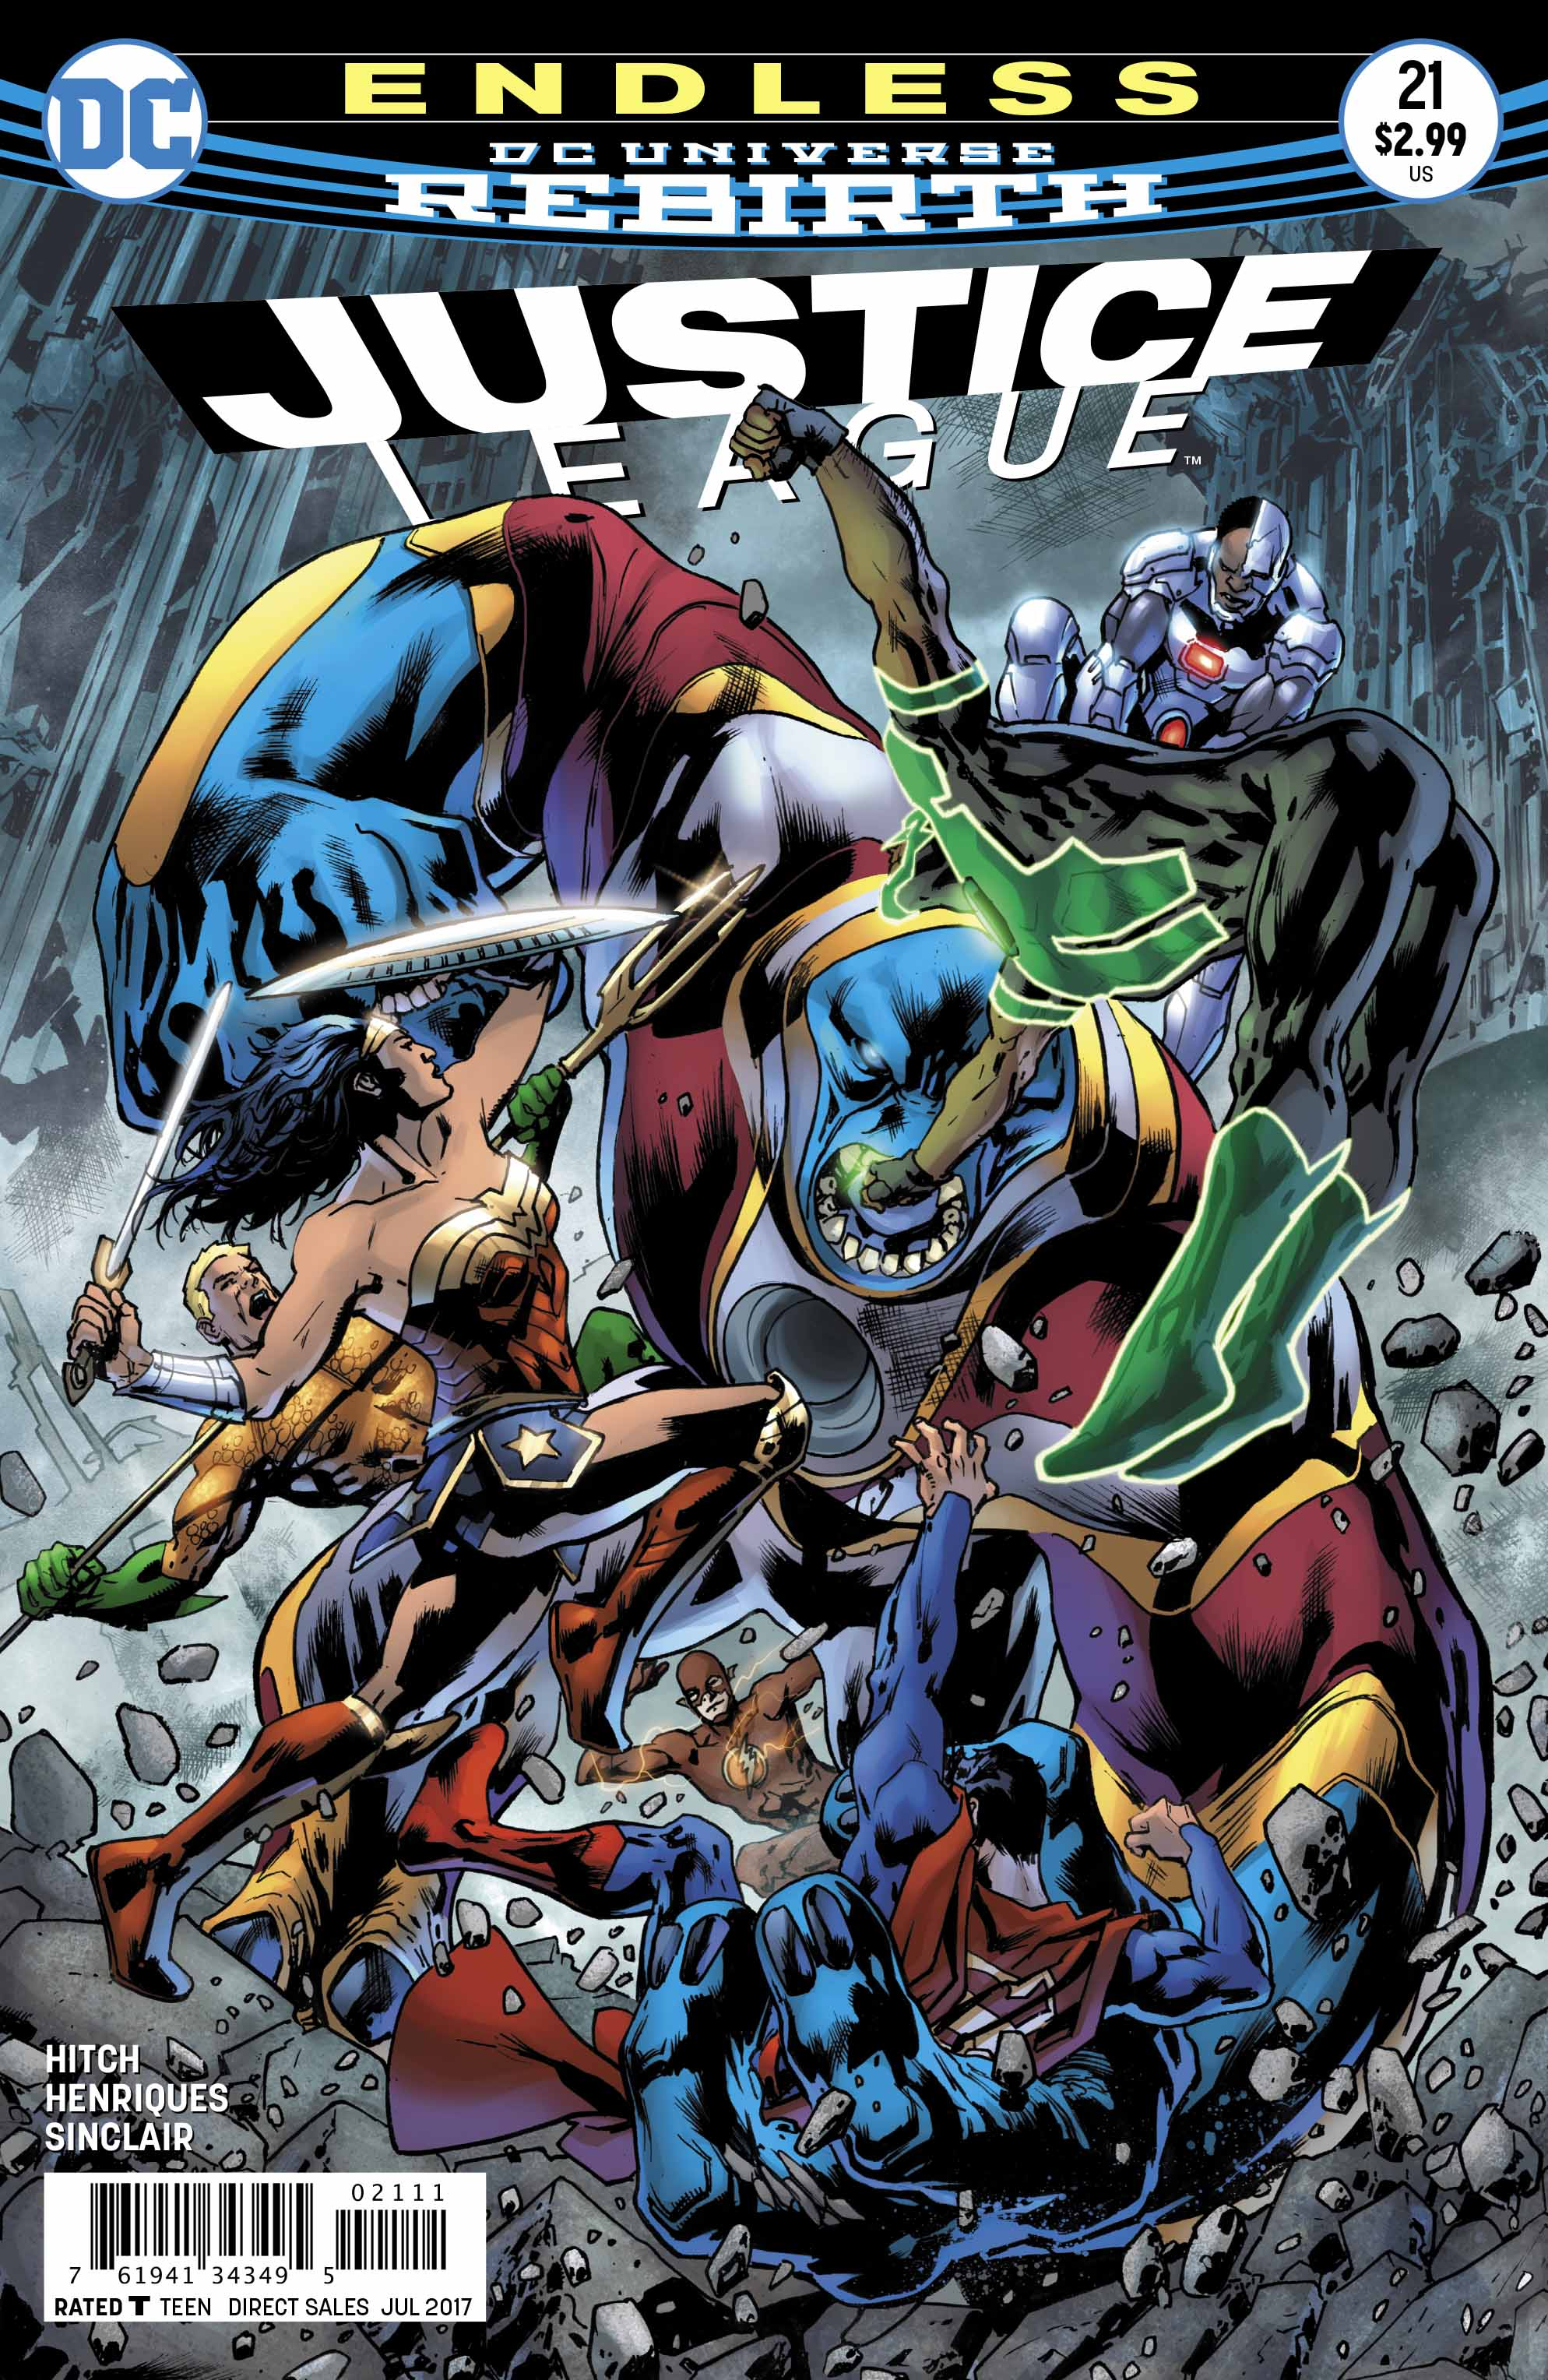 'Justice League' #21 hits stores next week